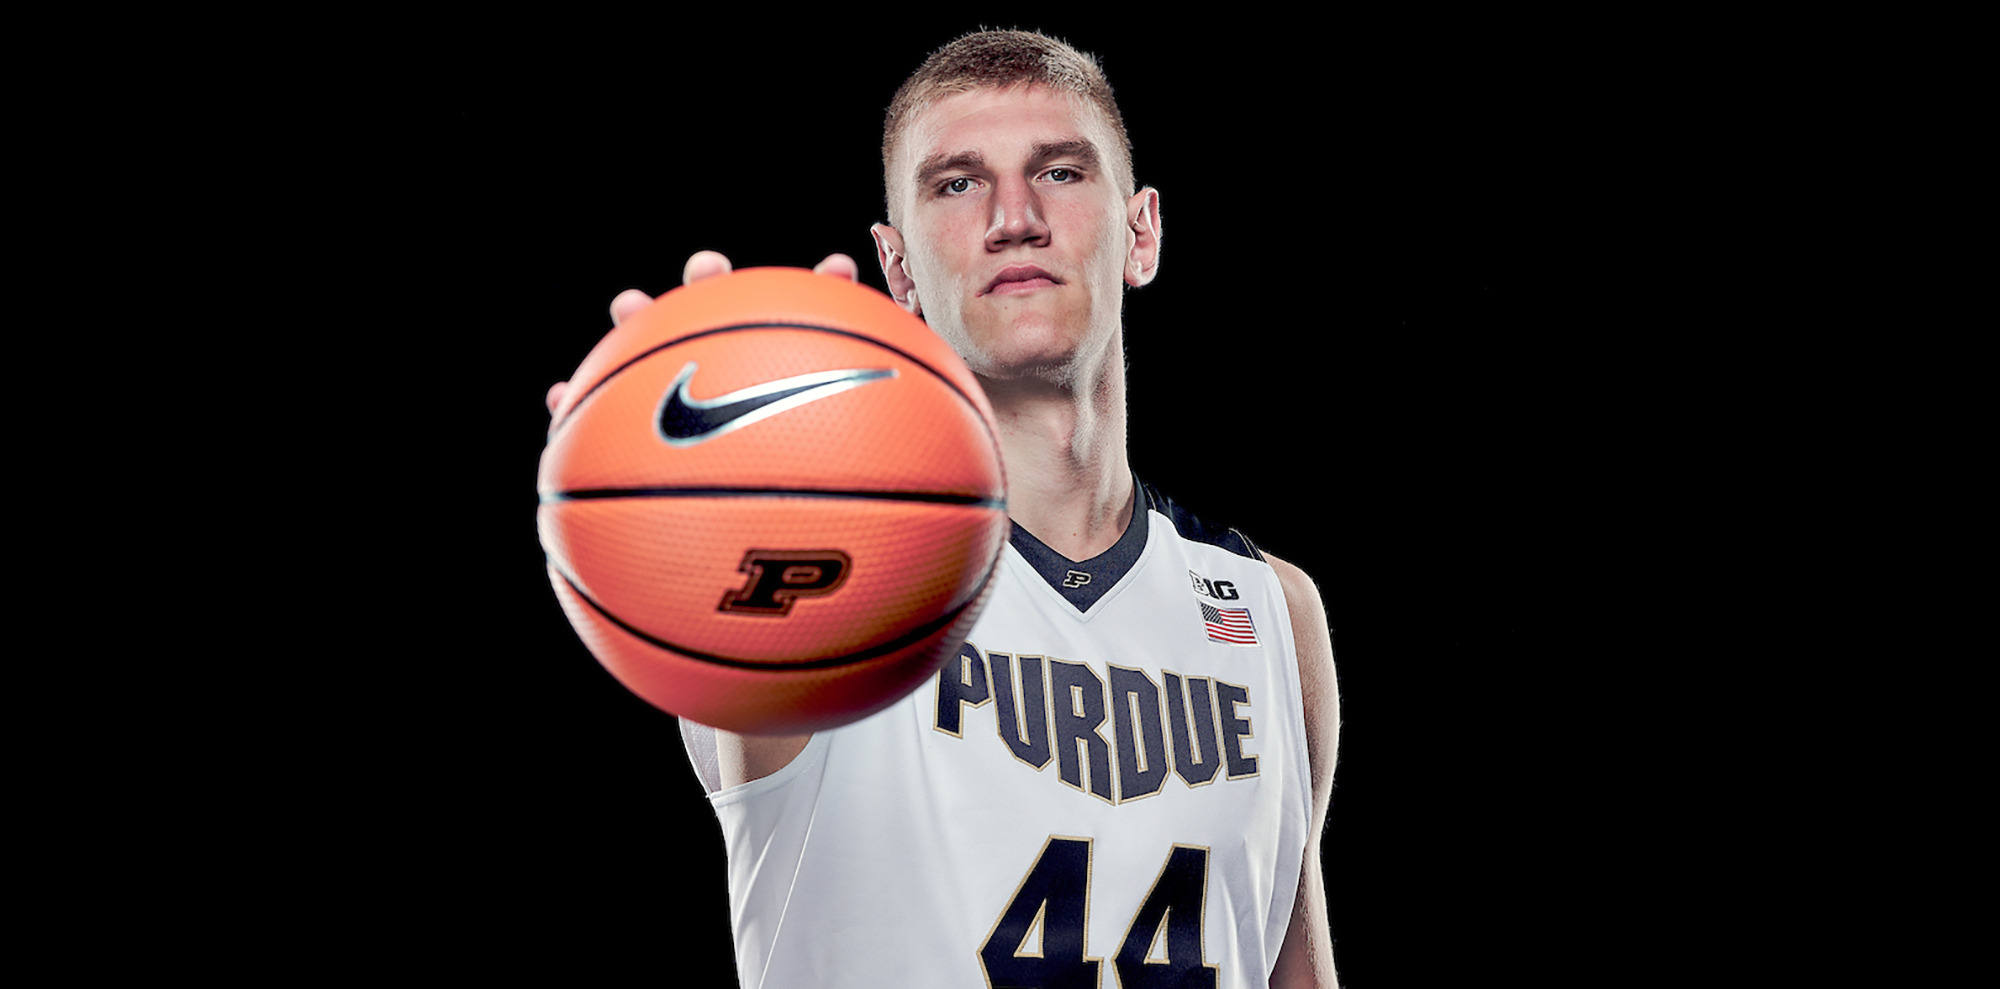 8b88c2aae3c4 Getting to Know  Isaac Haas - Purdue University Athletics